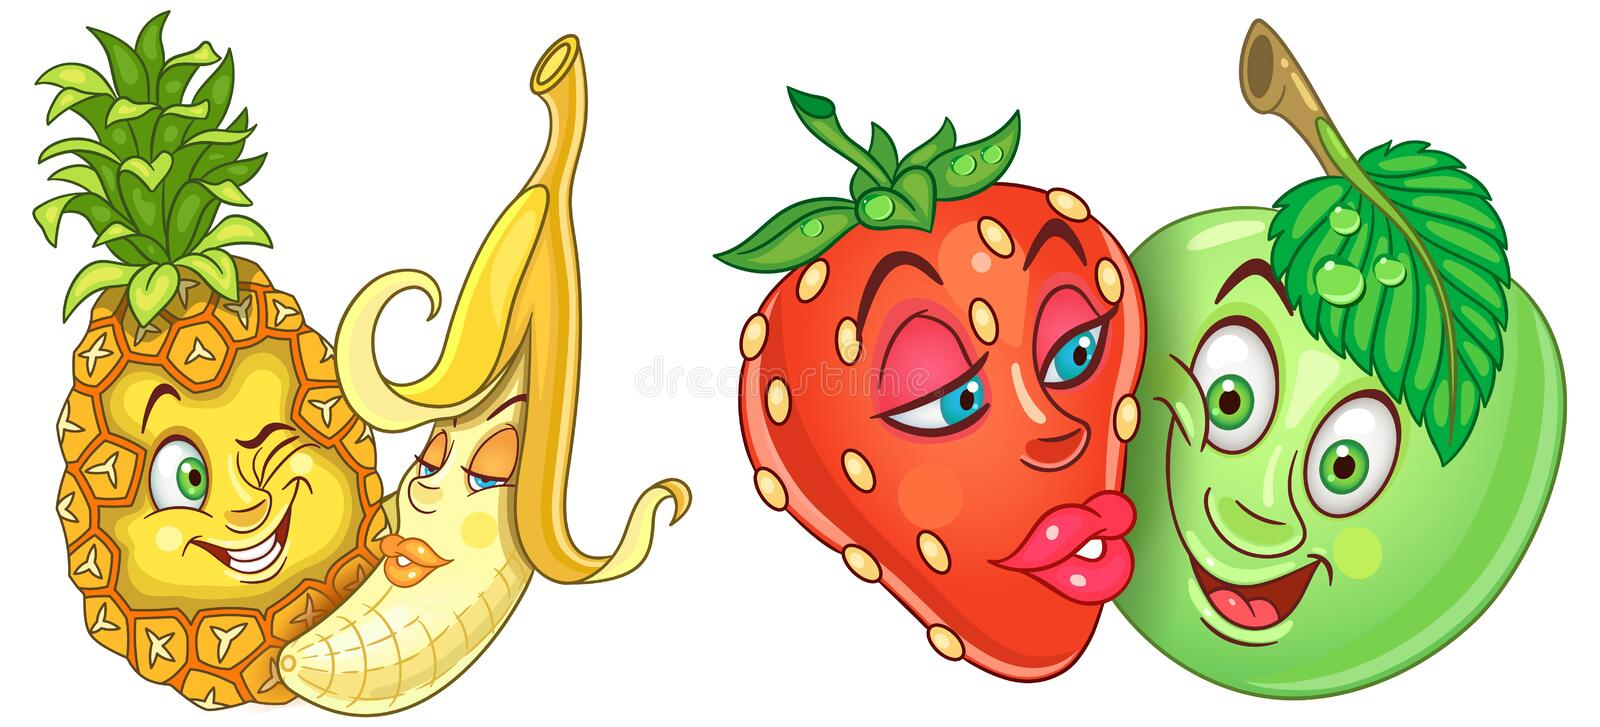 Cartoon Fruits in Love stock photography